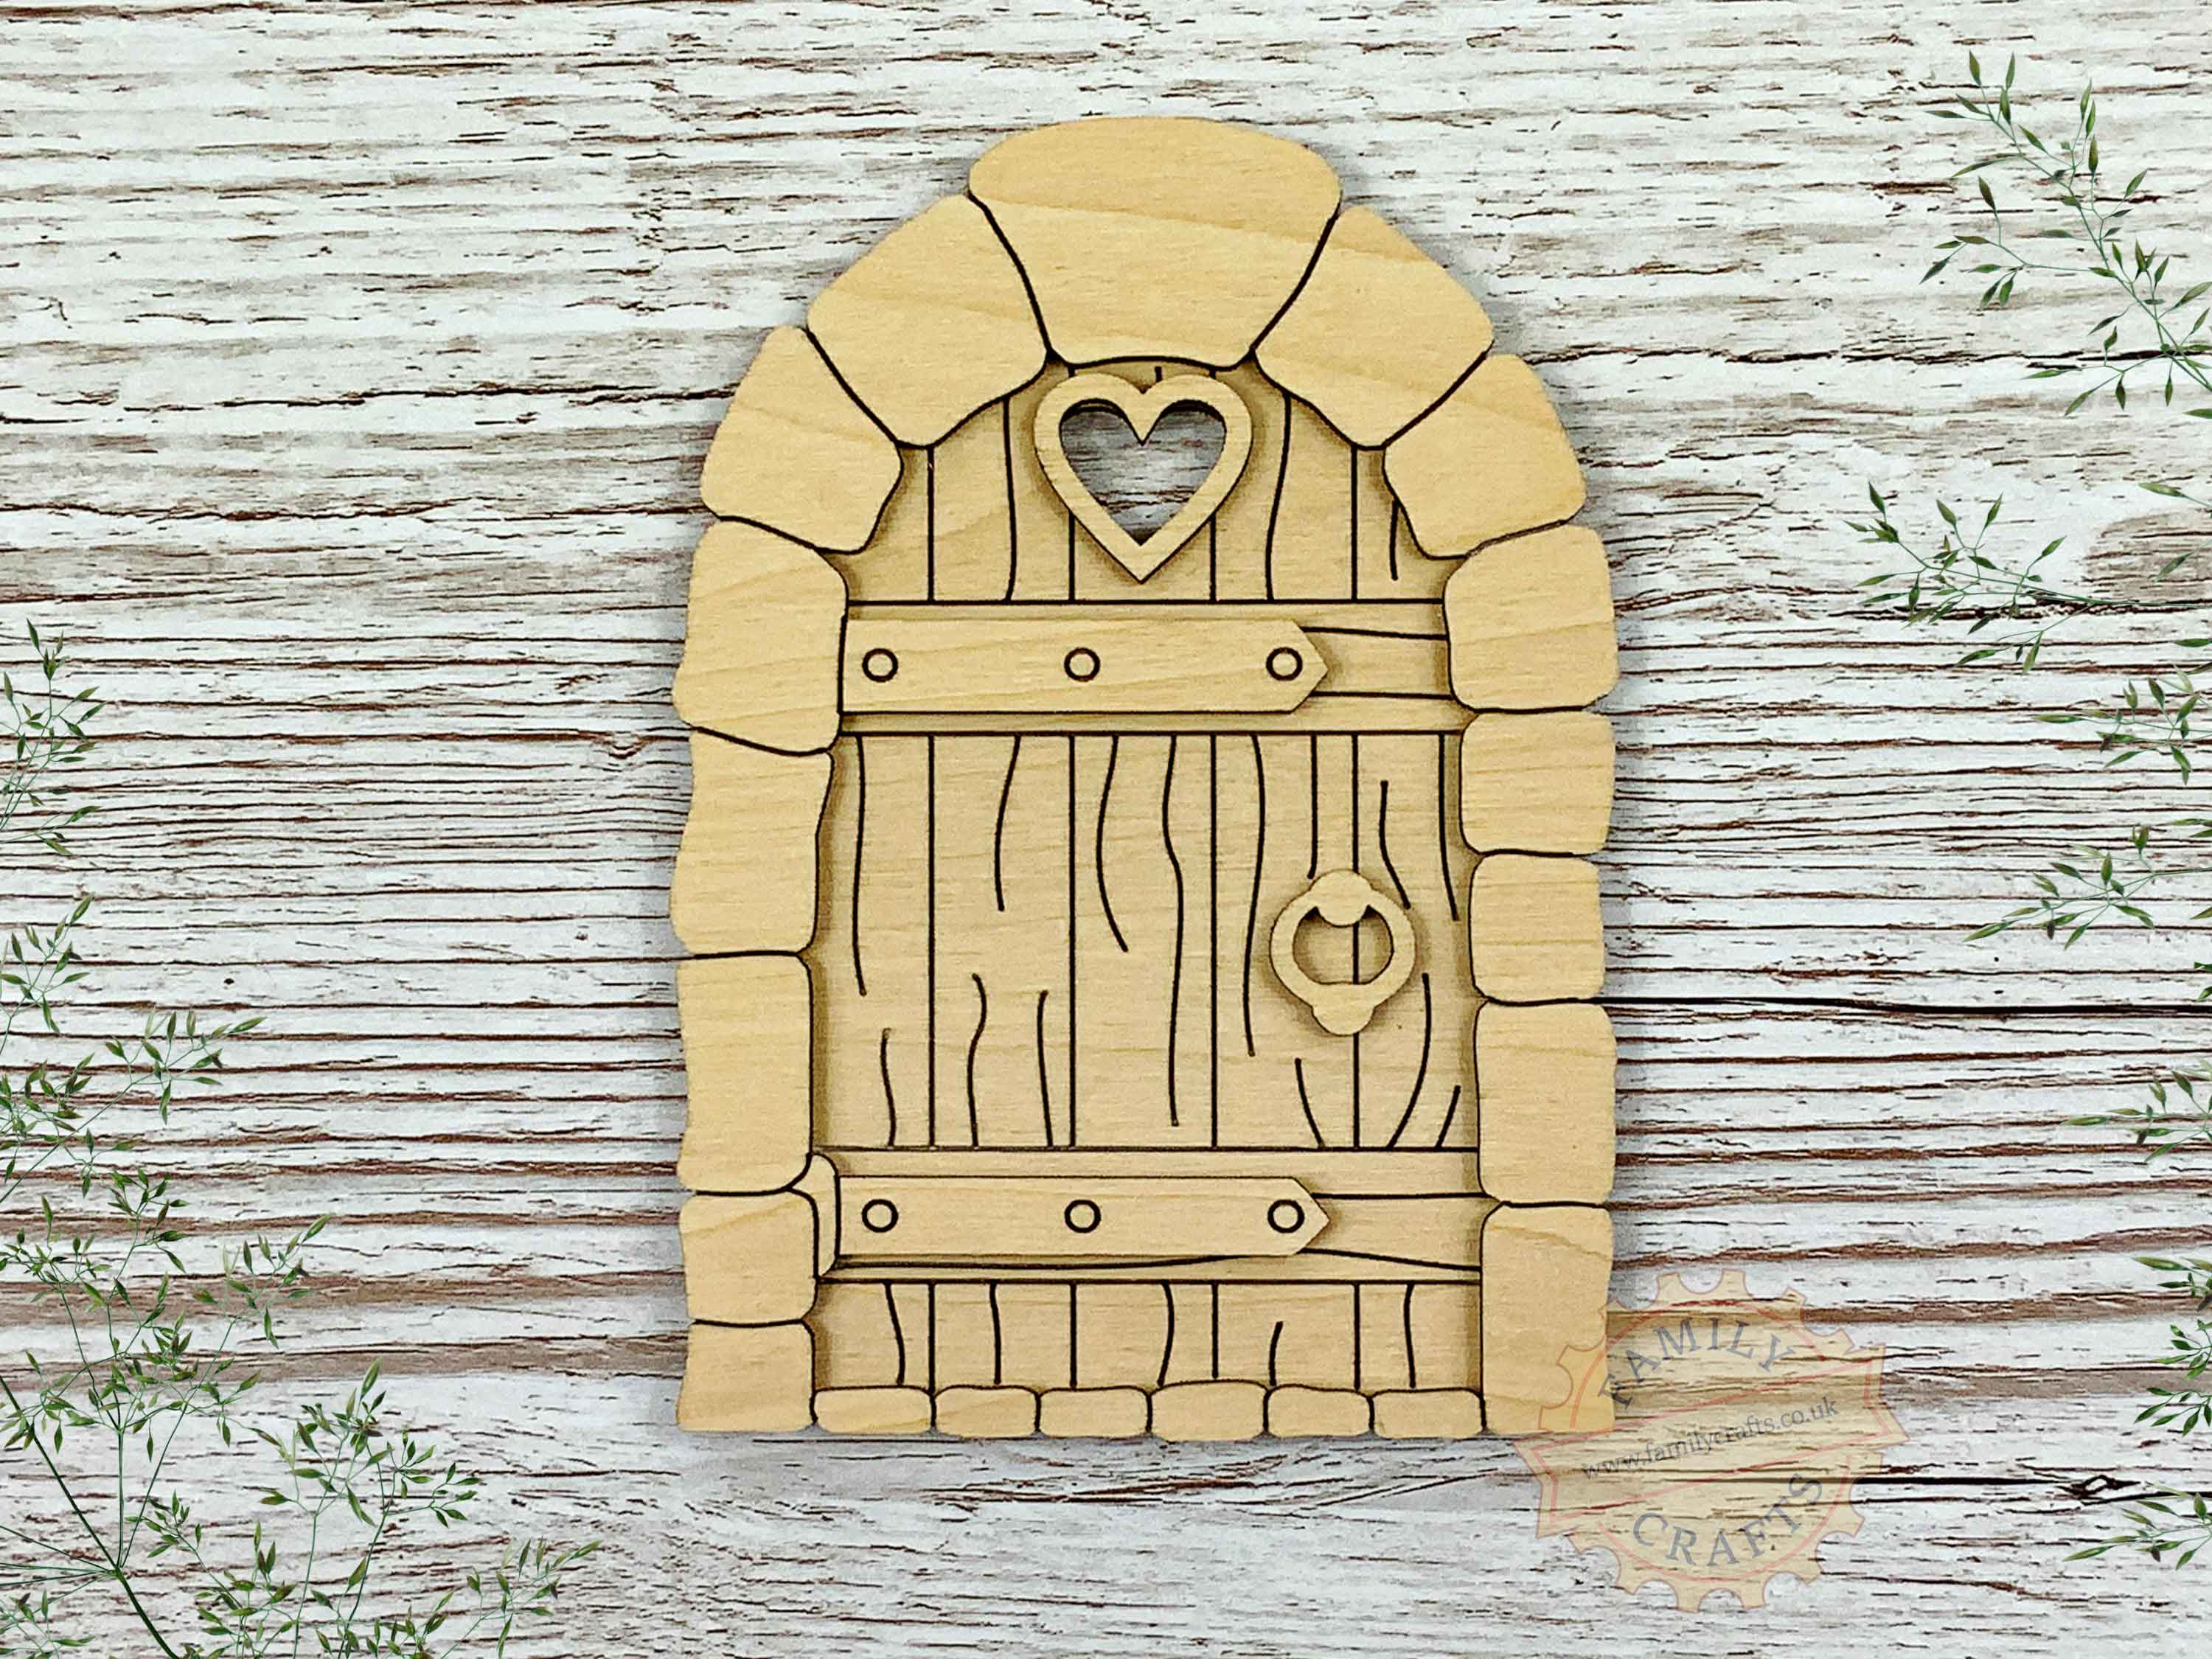 plywood cobblestone fairy door kit with woodgrain